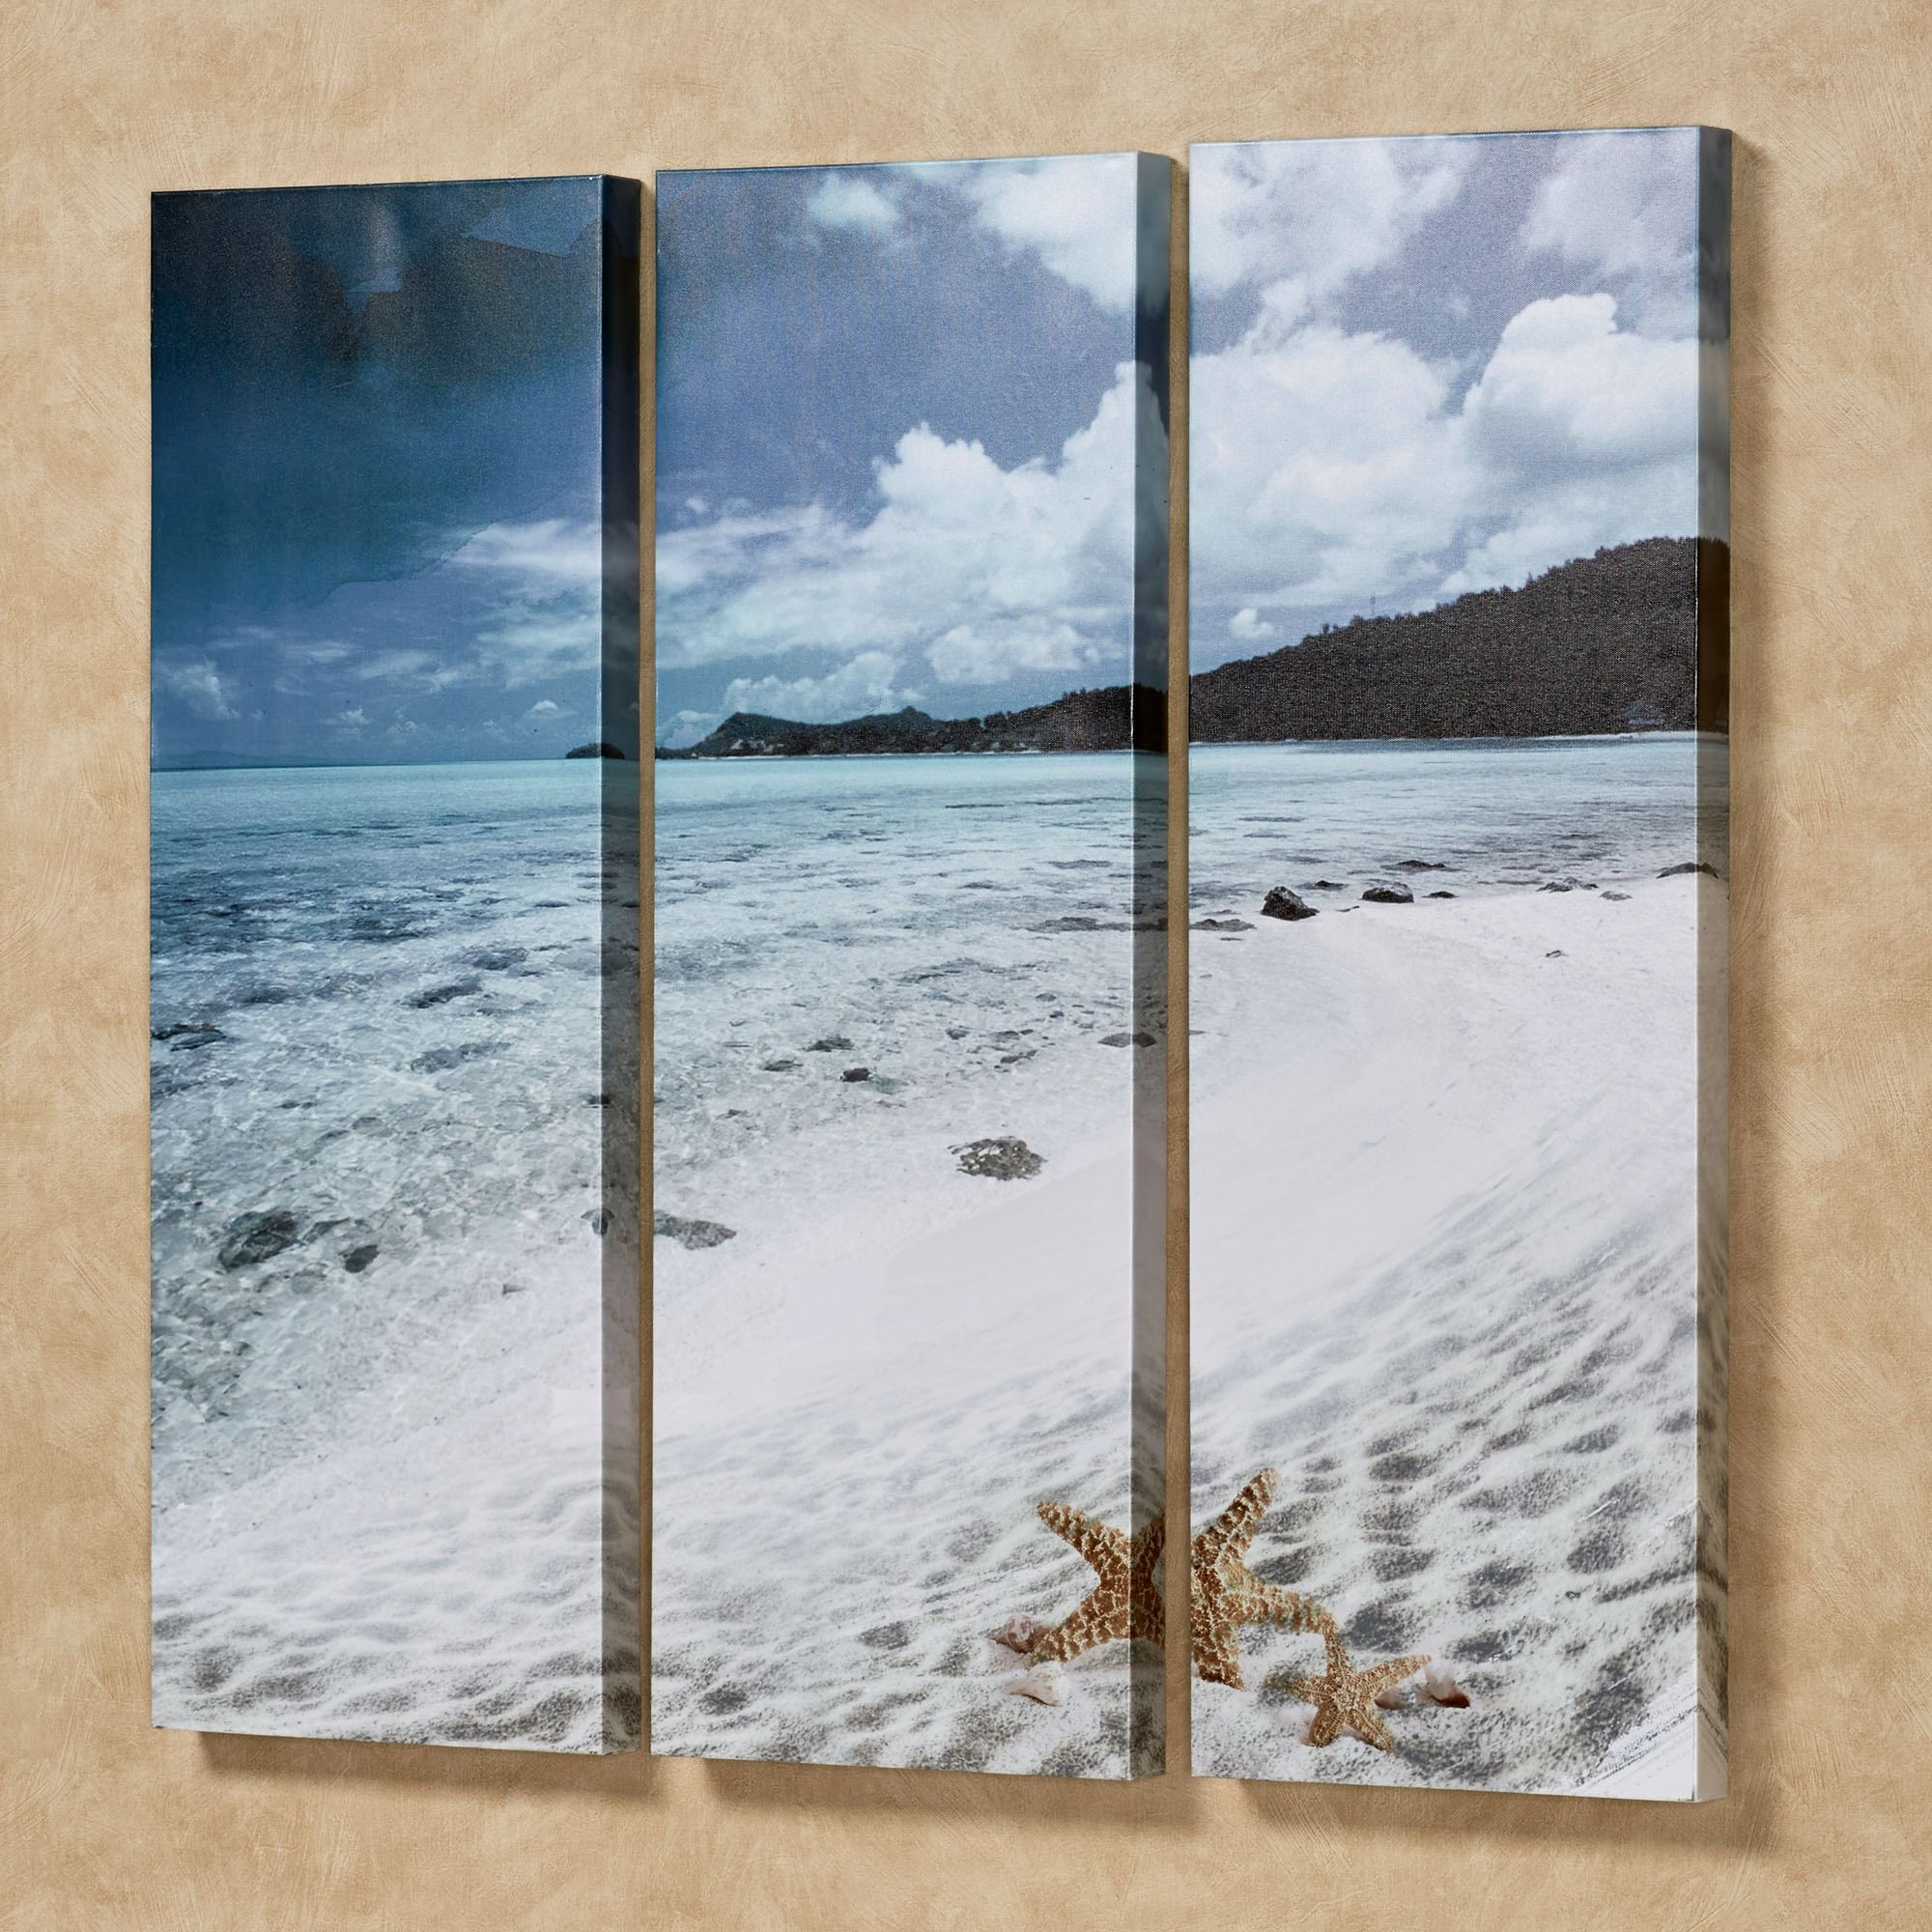 Marvelous FREE SHIPPING. Paradise Beach Triptych Canvas Wall Art ...